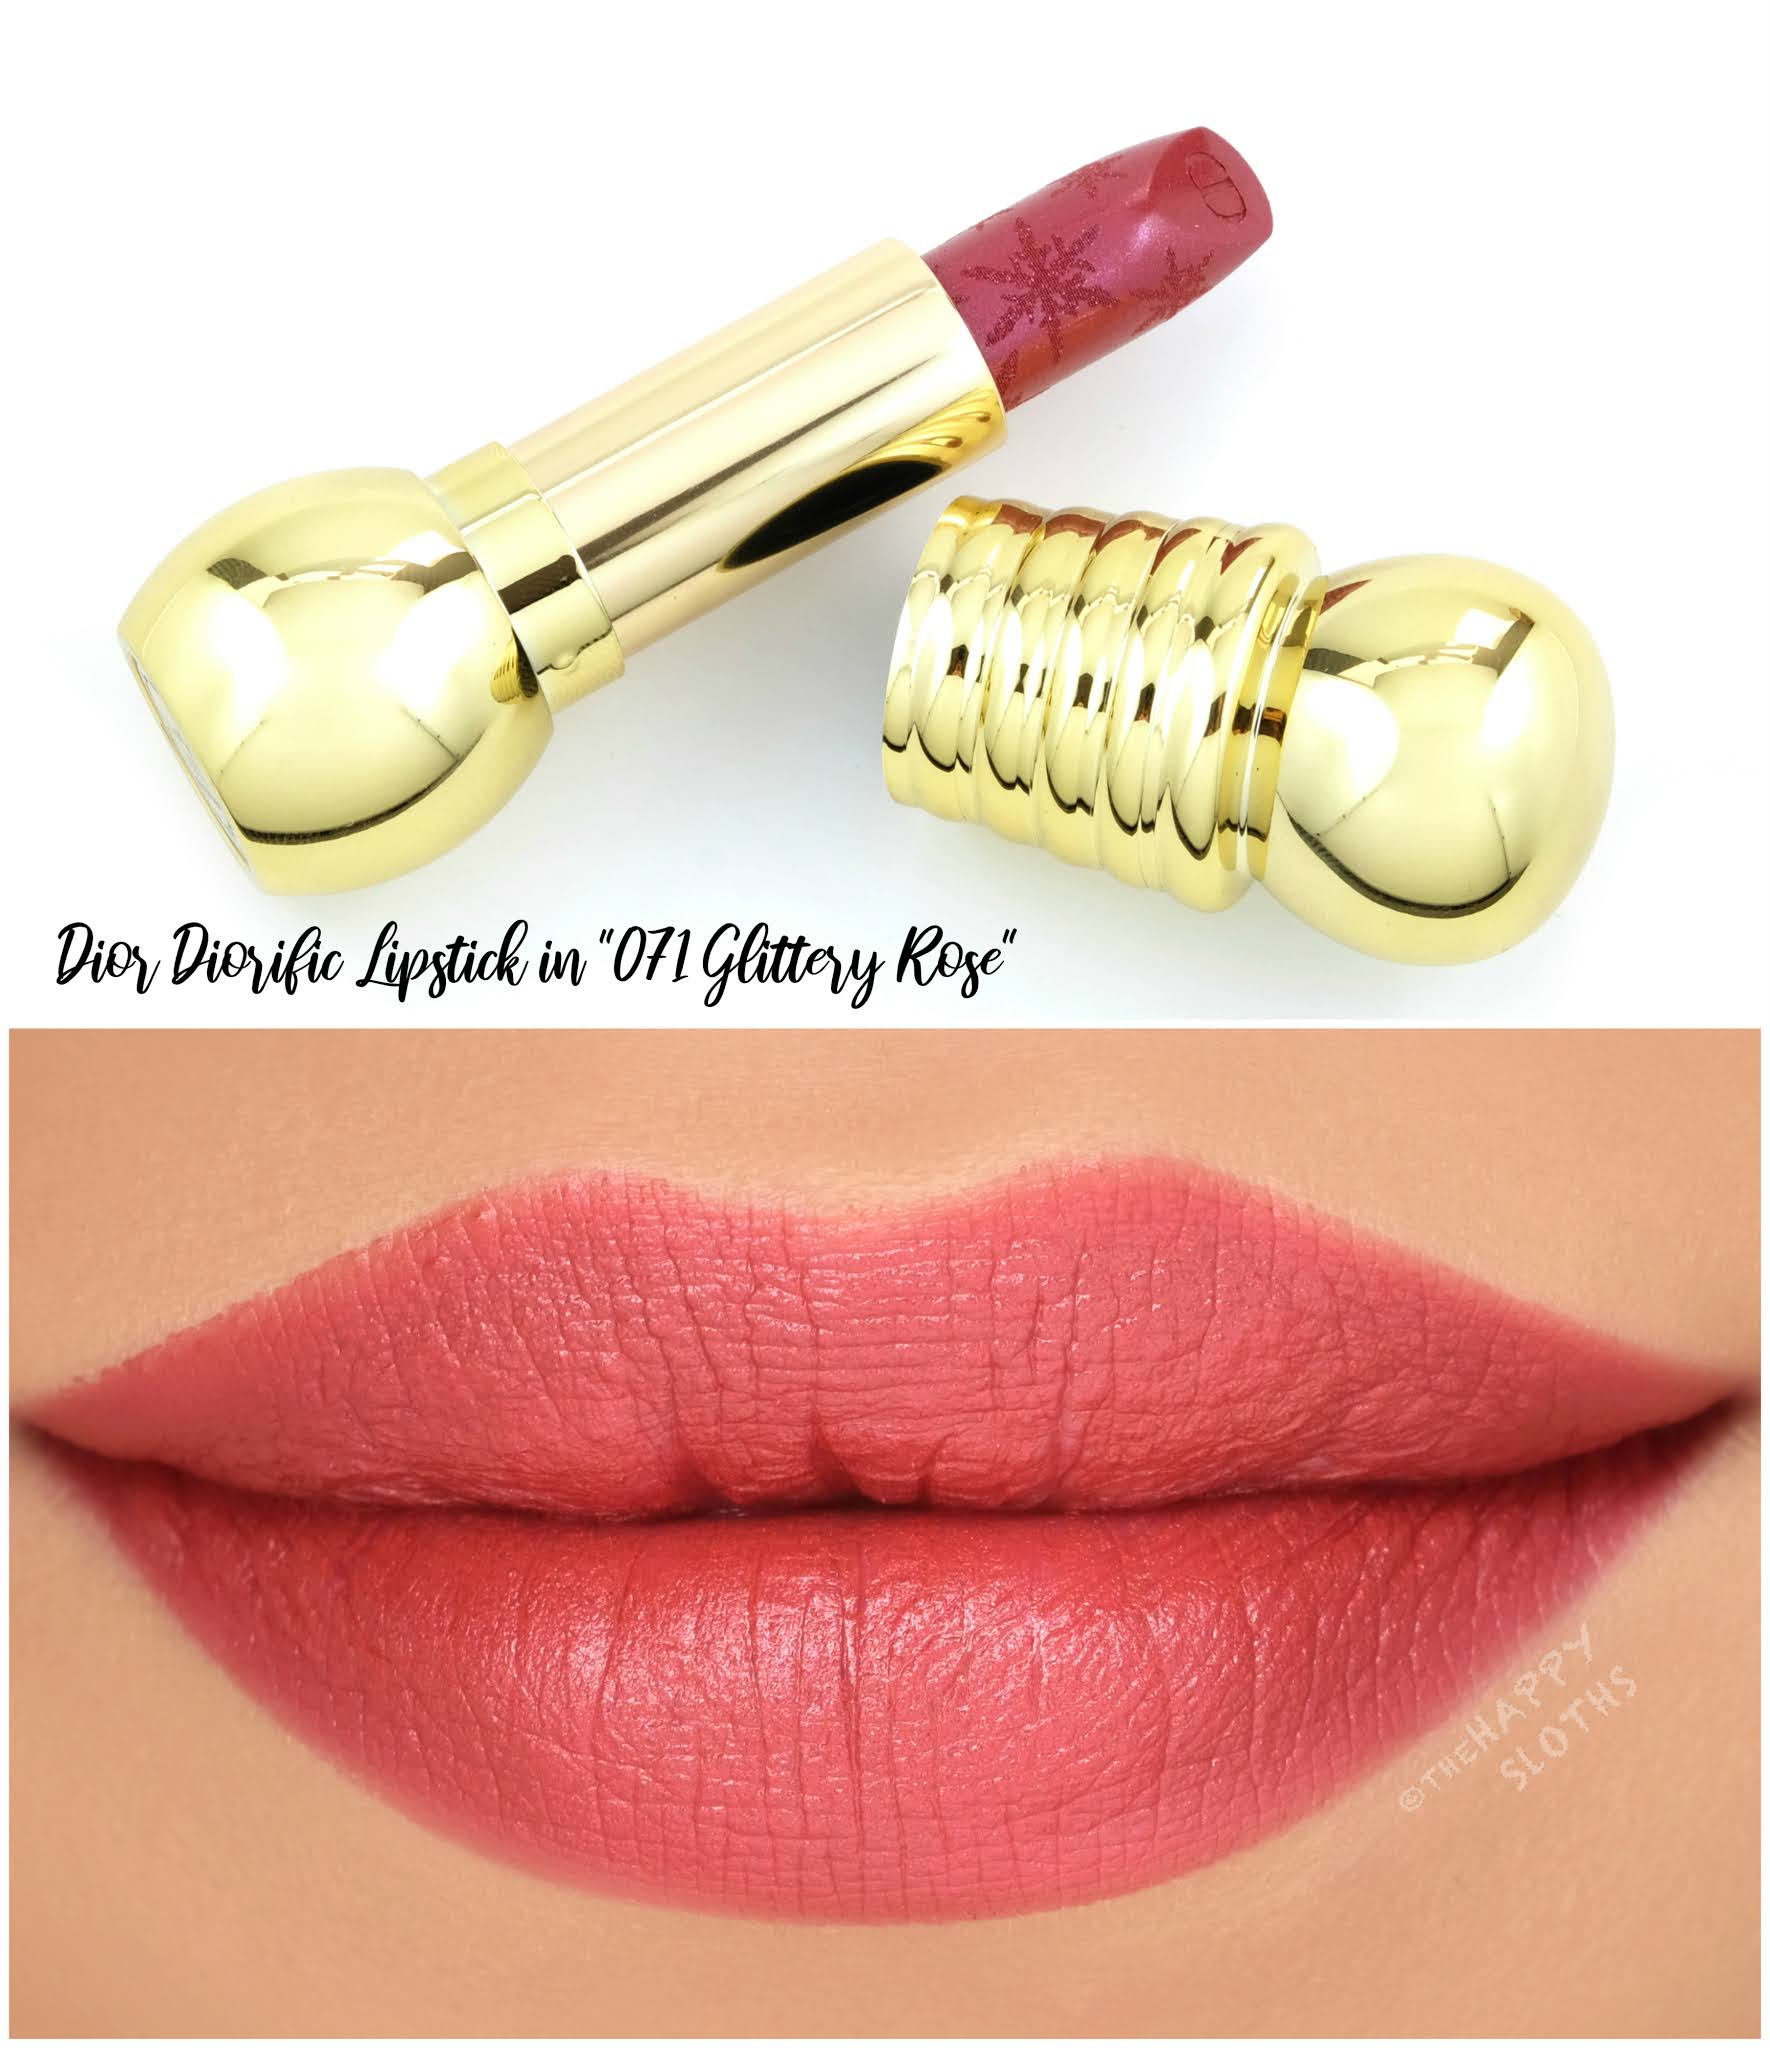 "Dior Holiday 2020 | Diorific Golden Nights Lipstick in ""071 Glittery Rose"": Review and Swatches"